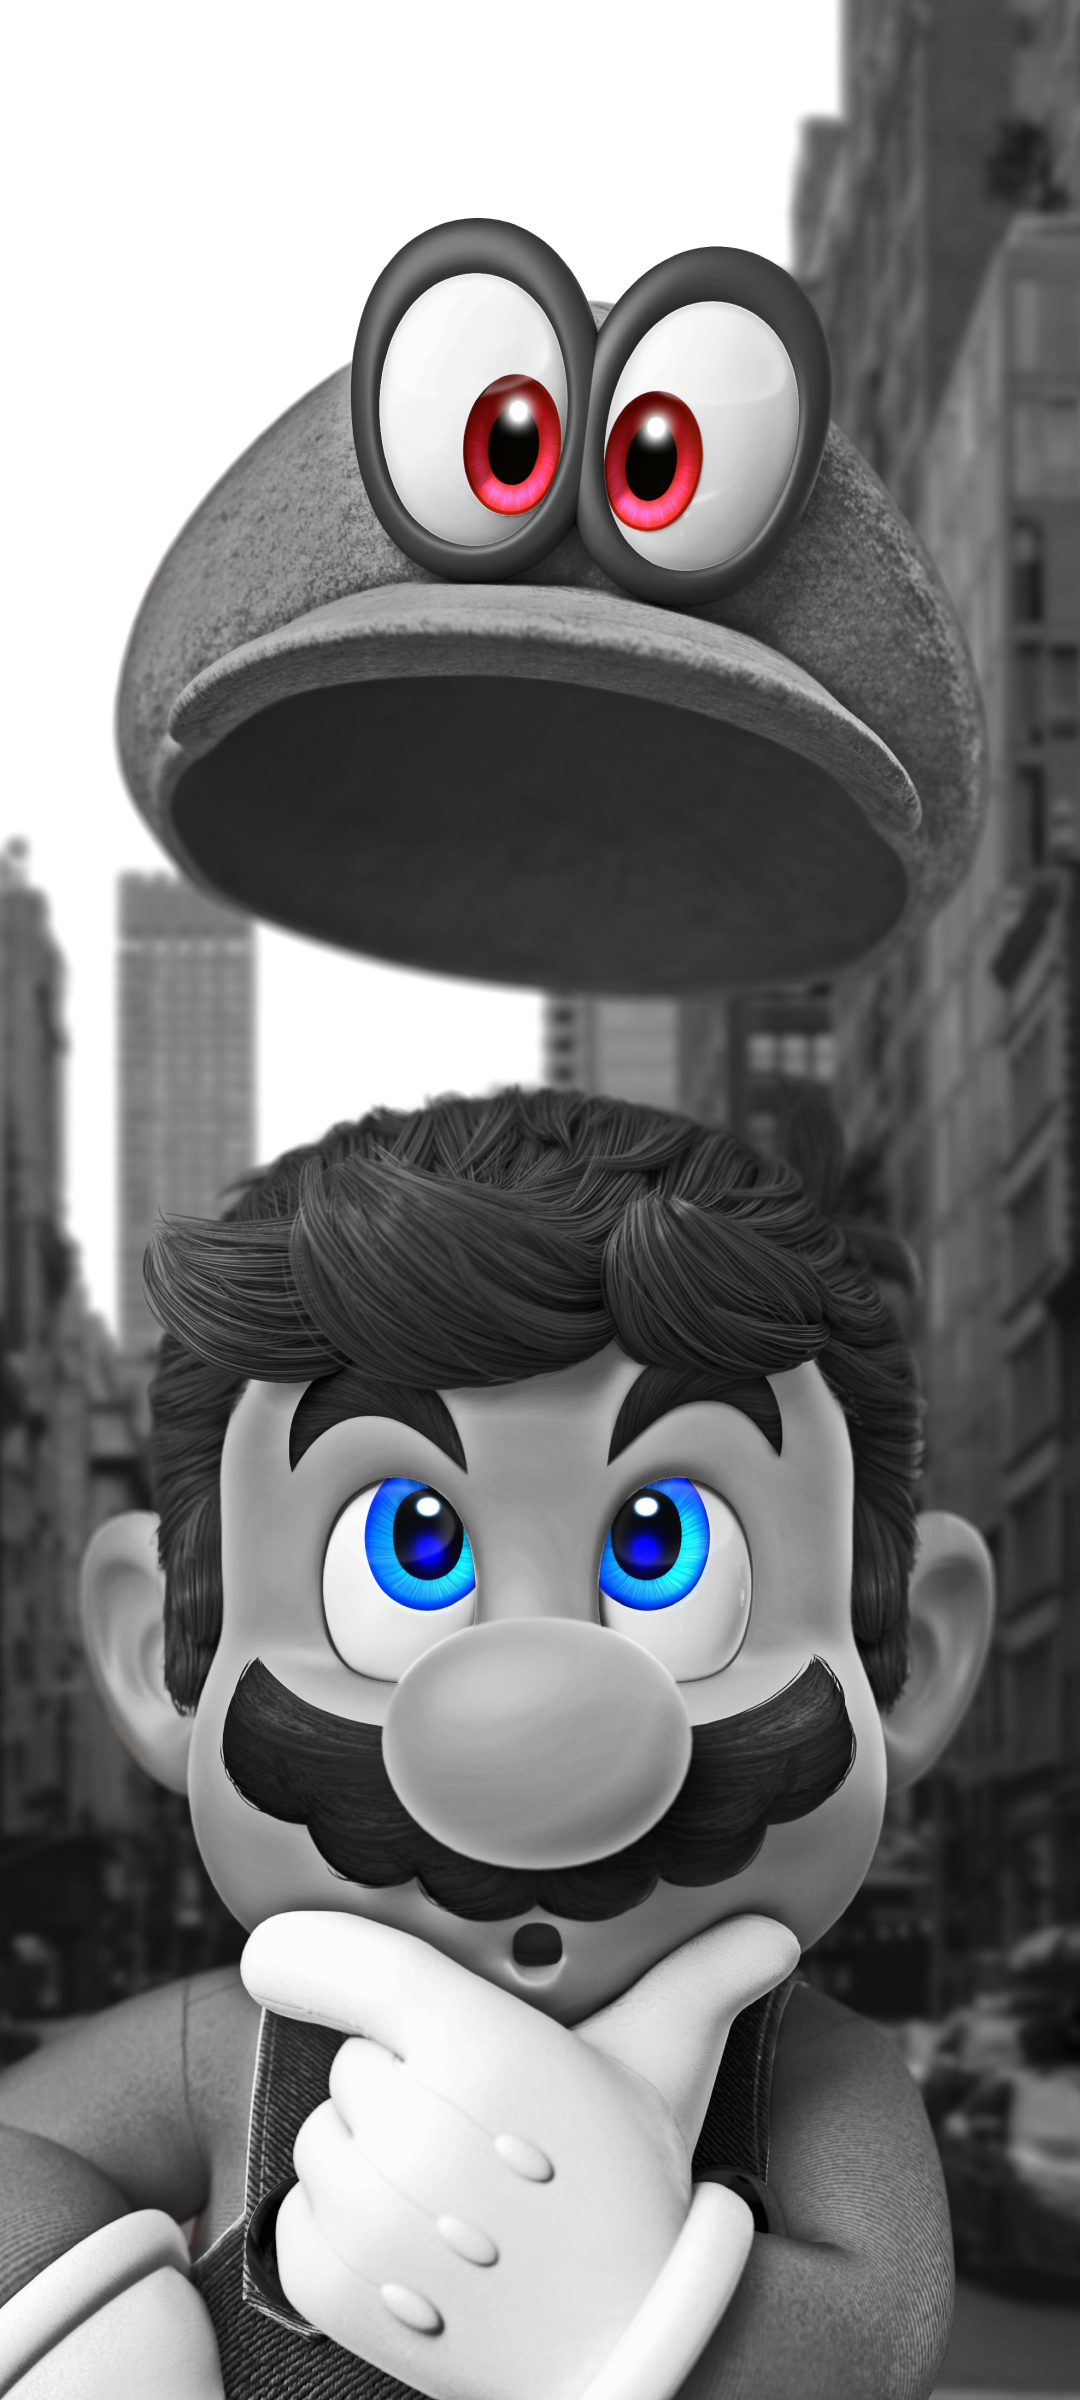 Video Game Super Mario Odyssey 720x1600 Wallpaper Id 871011